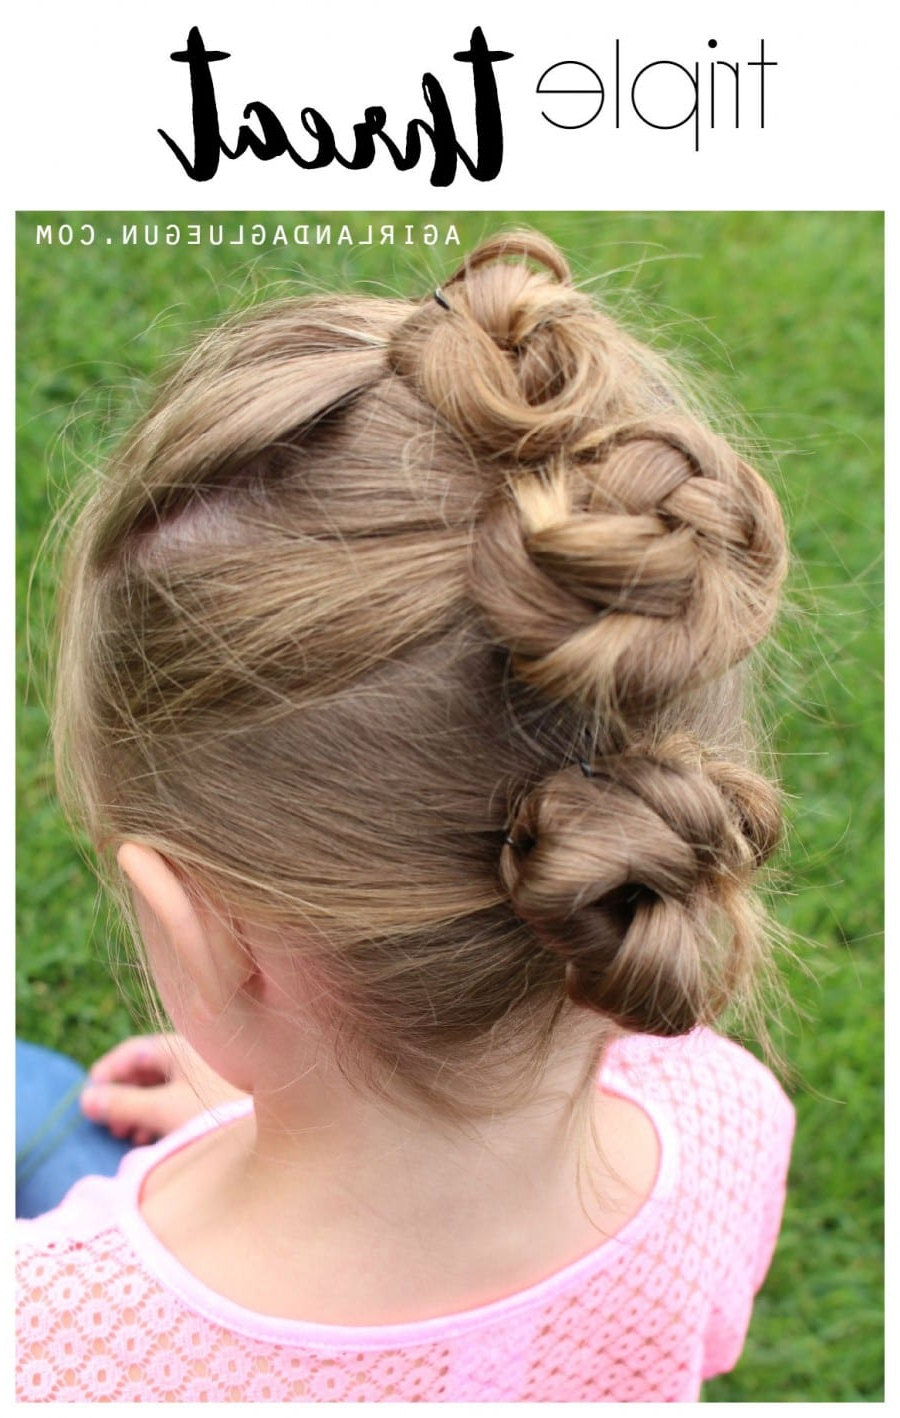 25 Girl Hair Styles For Toddlers And Tweens – A Girl And A Inside Well Known Triple Under Braid Hairstyles With A Bun (View 14 of 20)